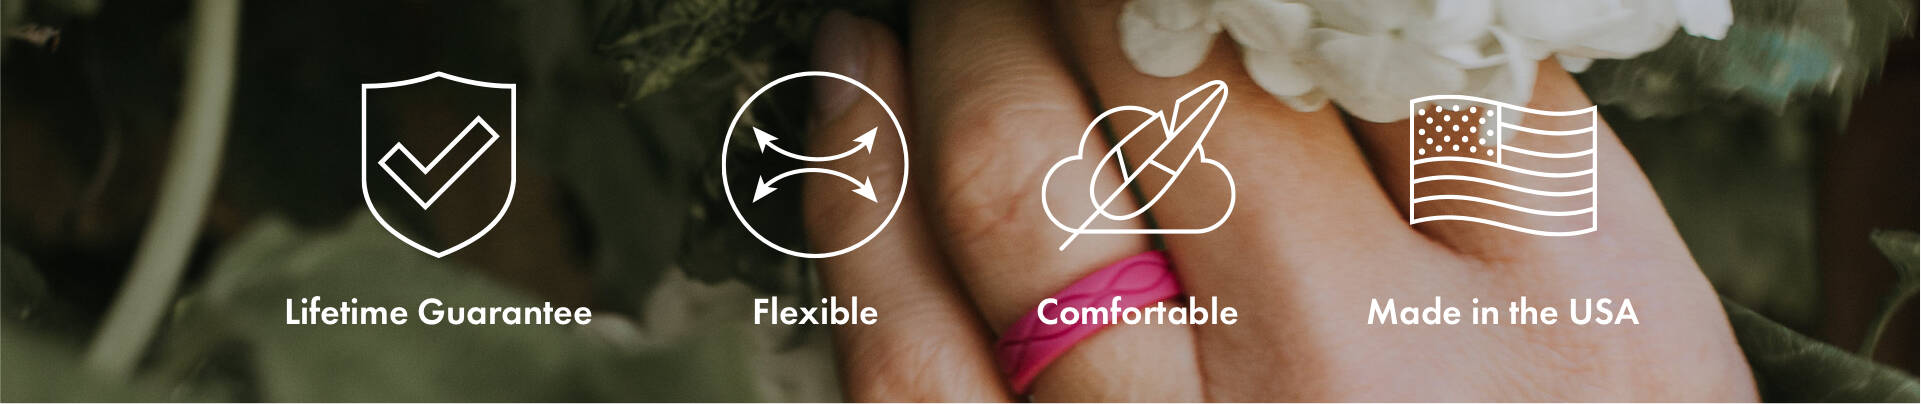 Breast Cancer Awareness Collection | Enso Rings come with a lifetime warranty, guaranteed flexible, comfortabe, and are made in the USA.